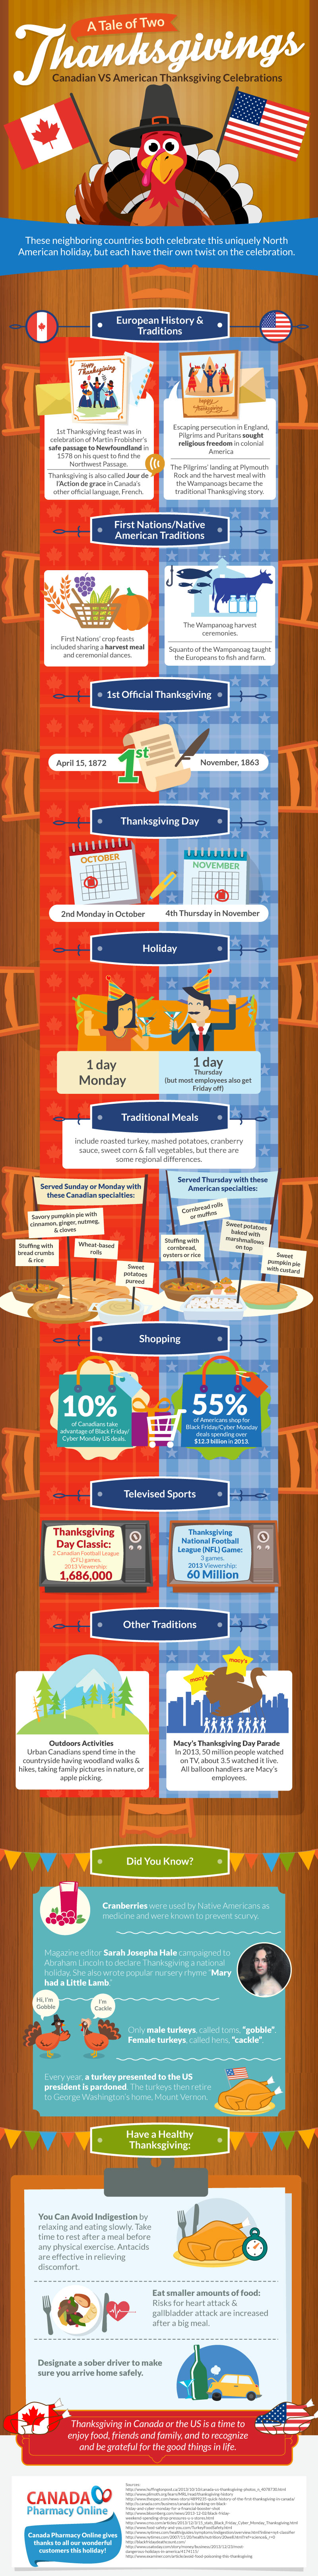 Infographic A Tale of Two Thanksgivings: Canadian VS American Thanksgiving Celebrations